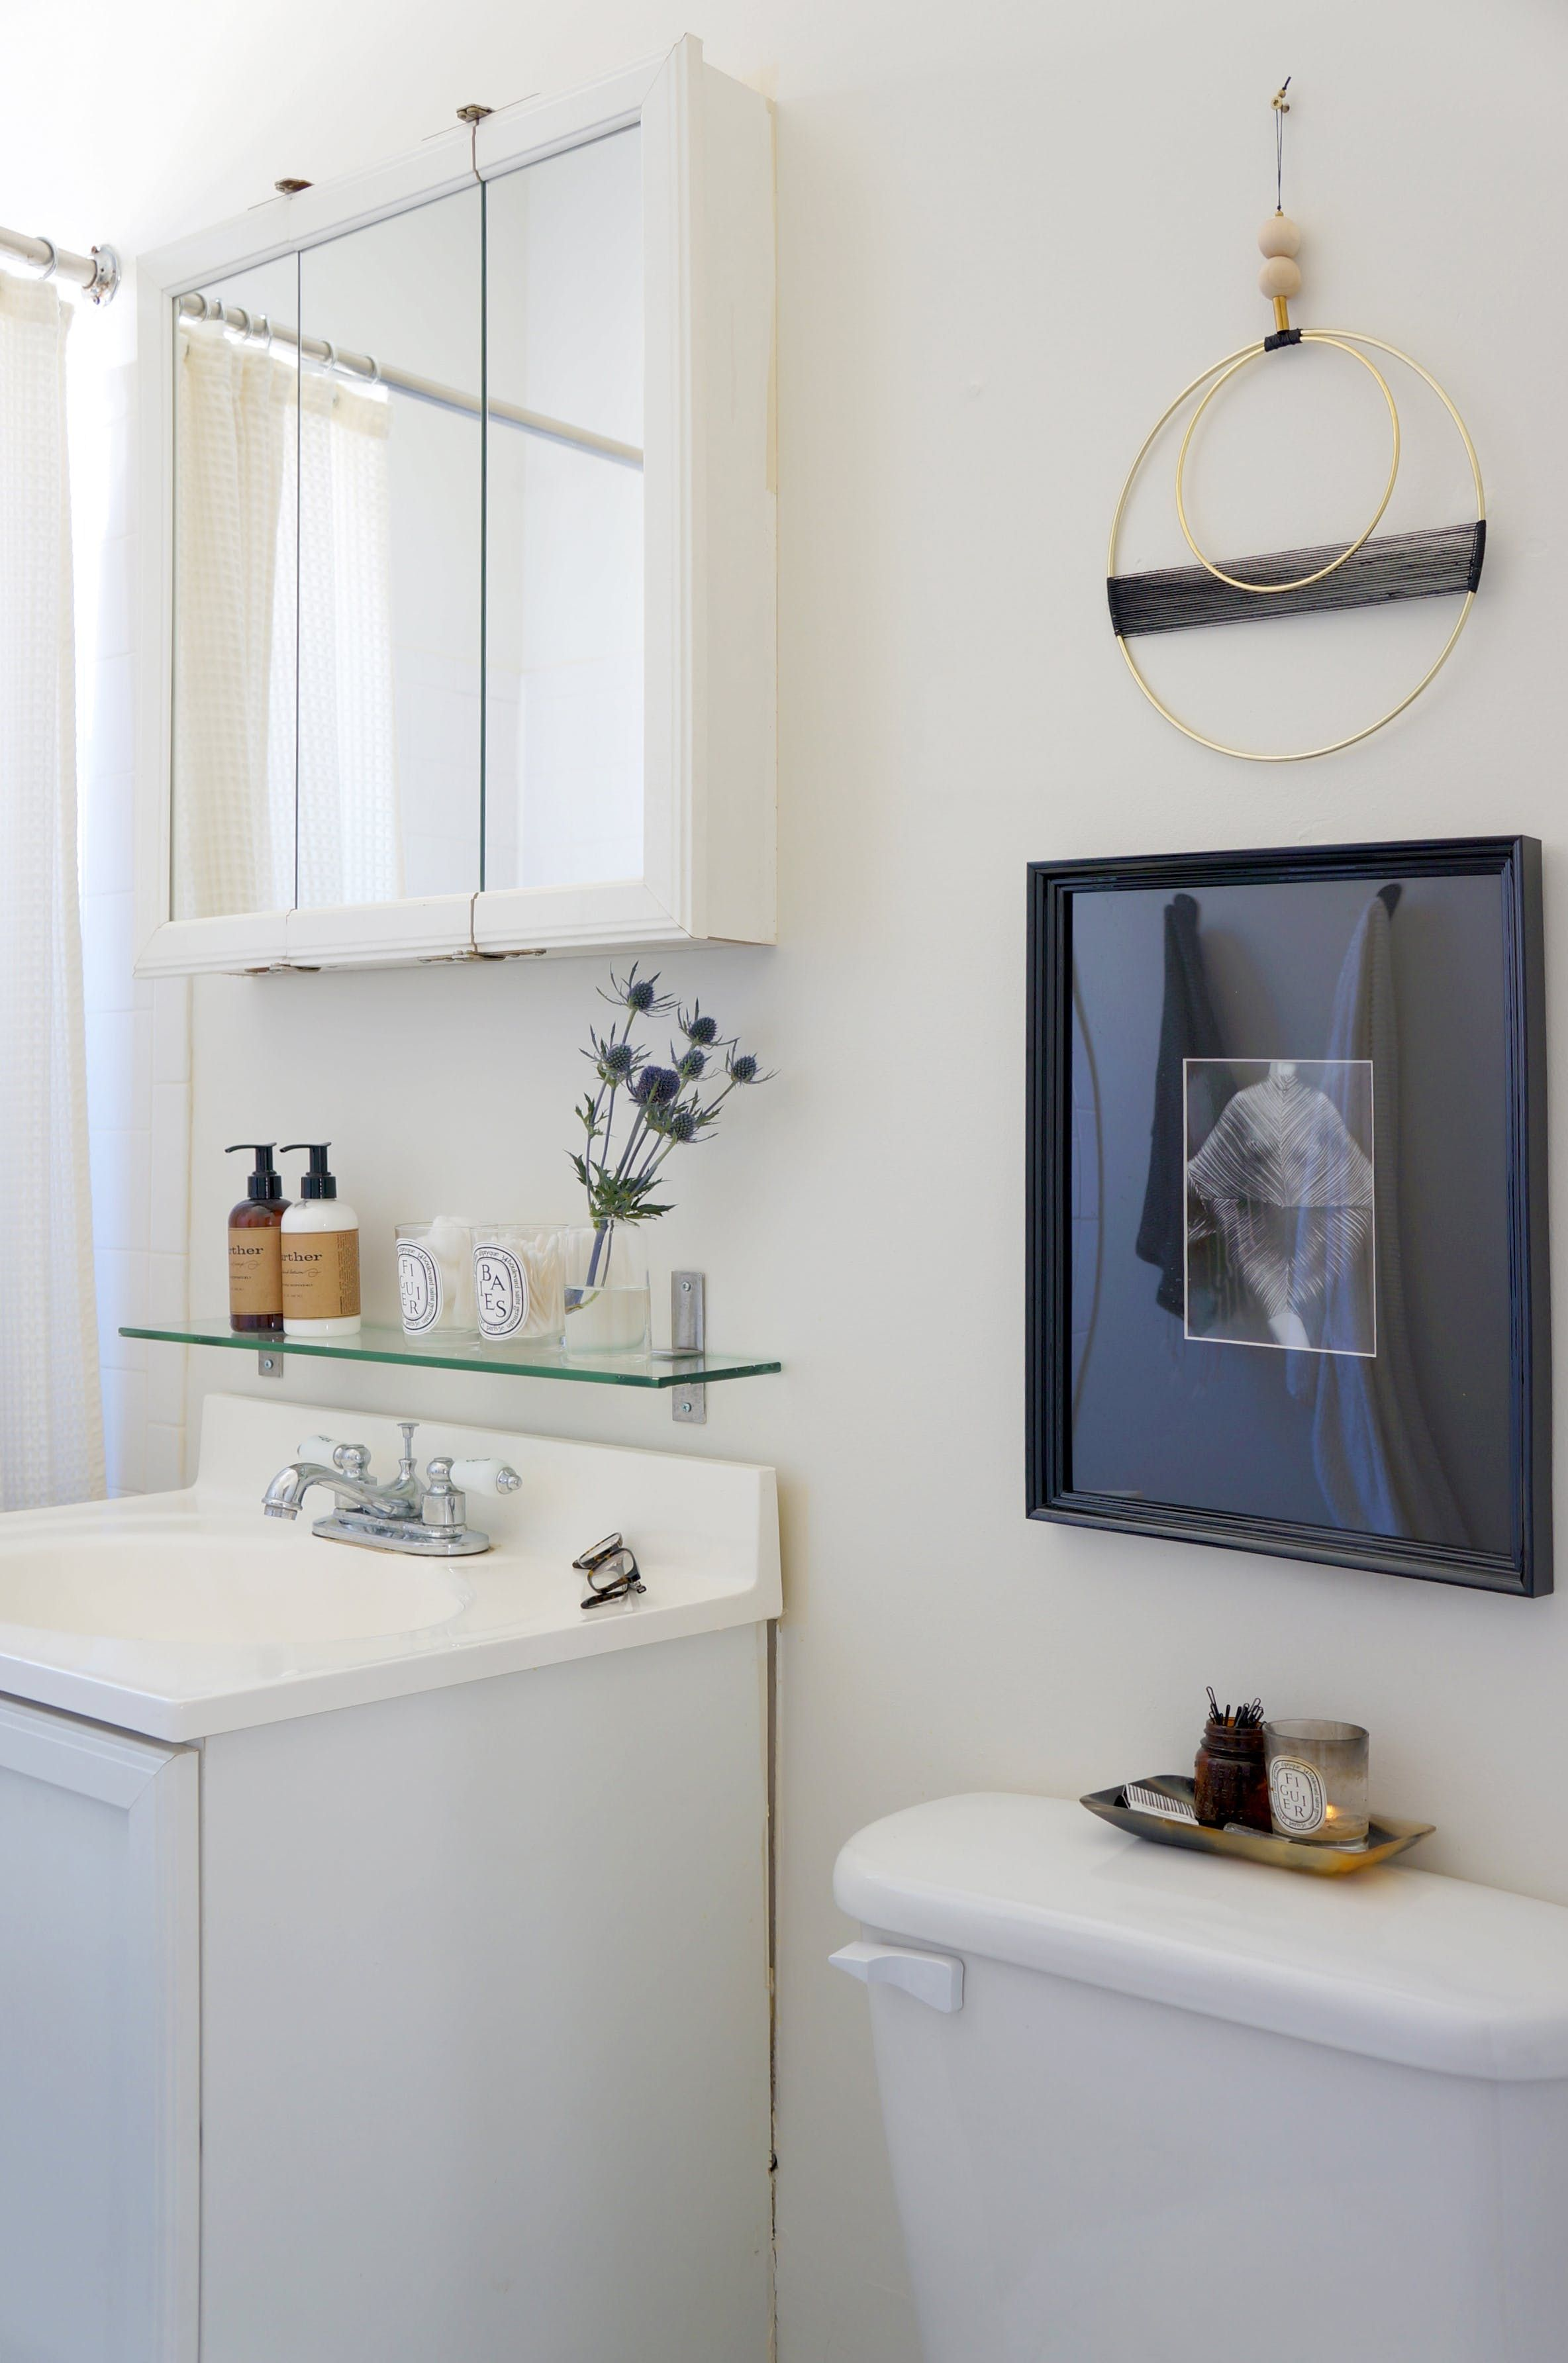 6 Places to Add Shelving (& Up Storage) in a Small Bathroom ...